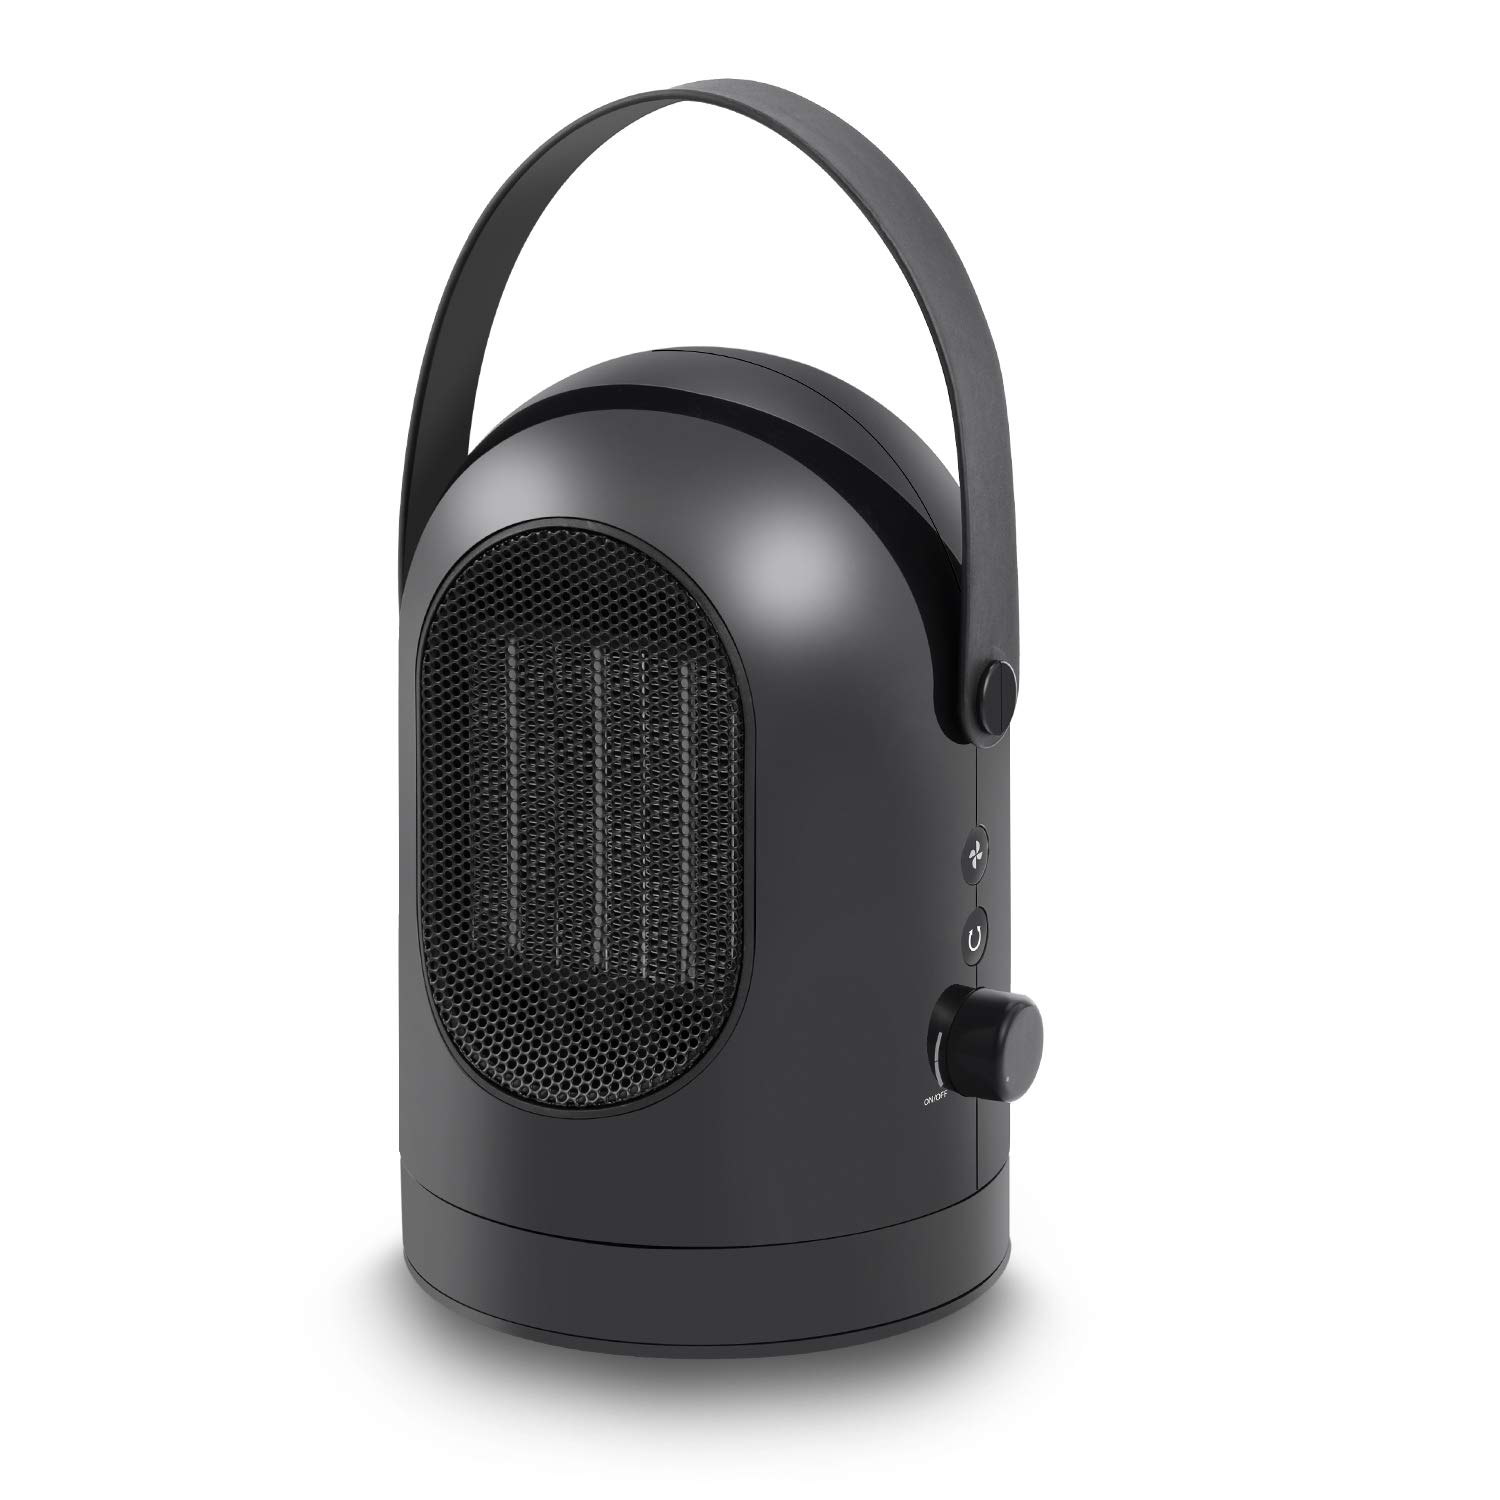 Fan Heater Oscillating Portable Ceramic Electric Heater, Personal Space Heater with Heat & Cool Settings, Adjustable Wind Speed, Overheat & Tip-over Protection for Office and Home Use, 600W, Black CZJ